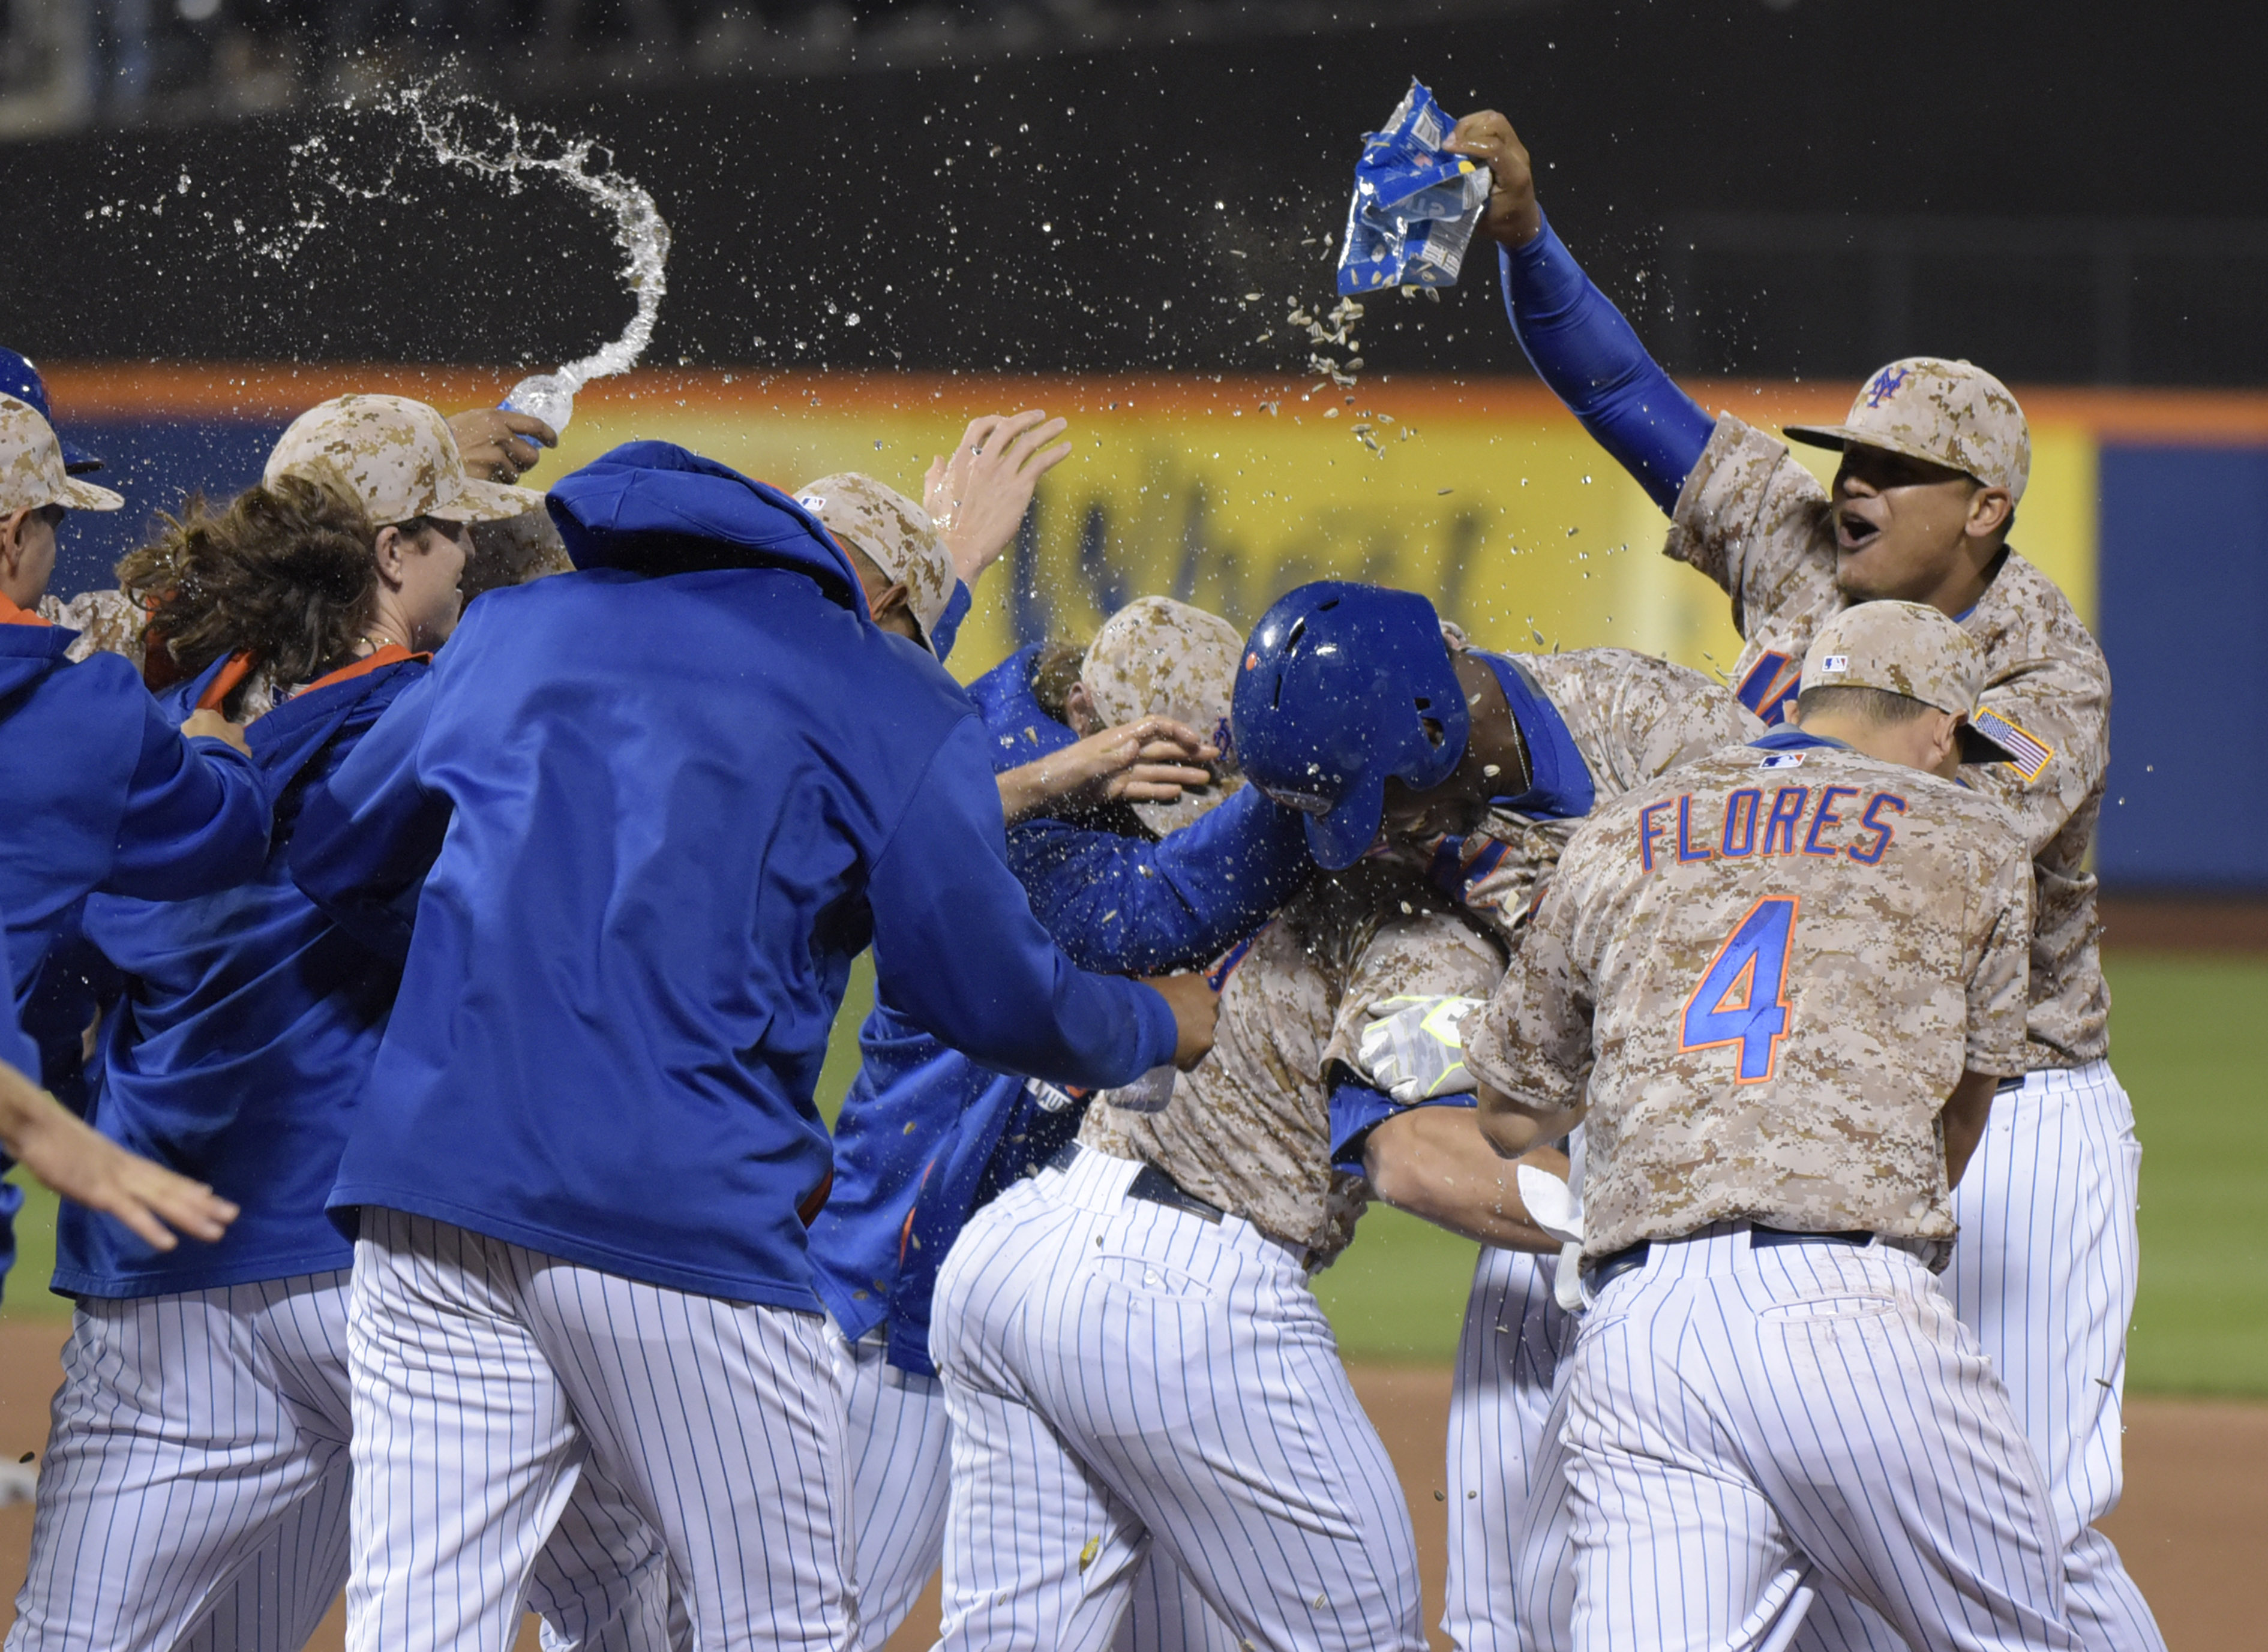 The New York Mets celebrate with John Mayberry Jr. after Mayberry hit an infield single to drive in the winning run as the Mets defeated the St. Louis Cardinals, 2-1, in the 14th inning of a baseball game Monday, May 18, 2015, at Citi Field in New York. (